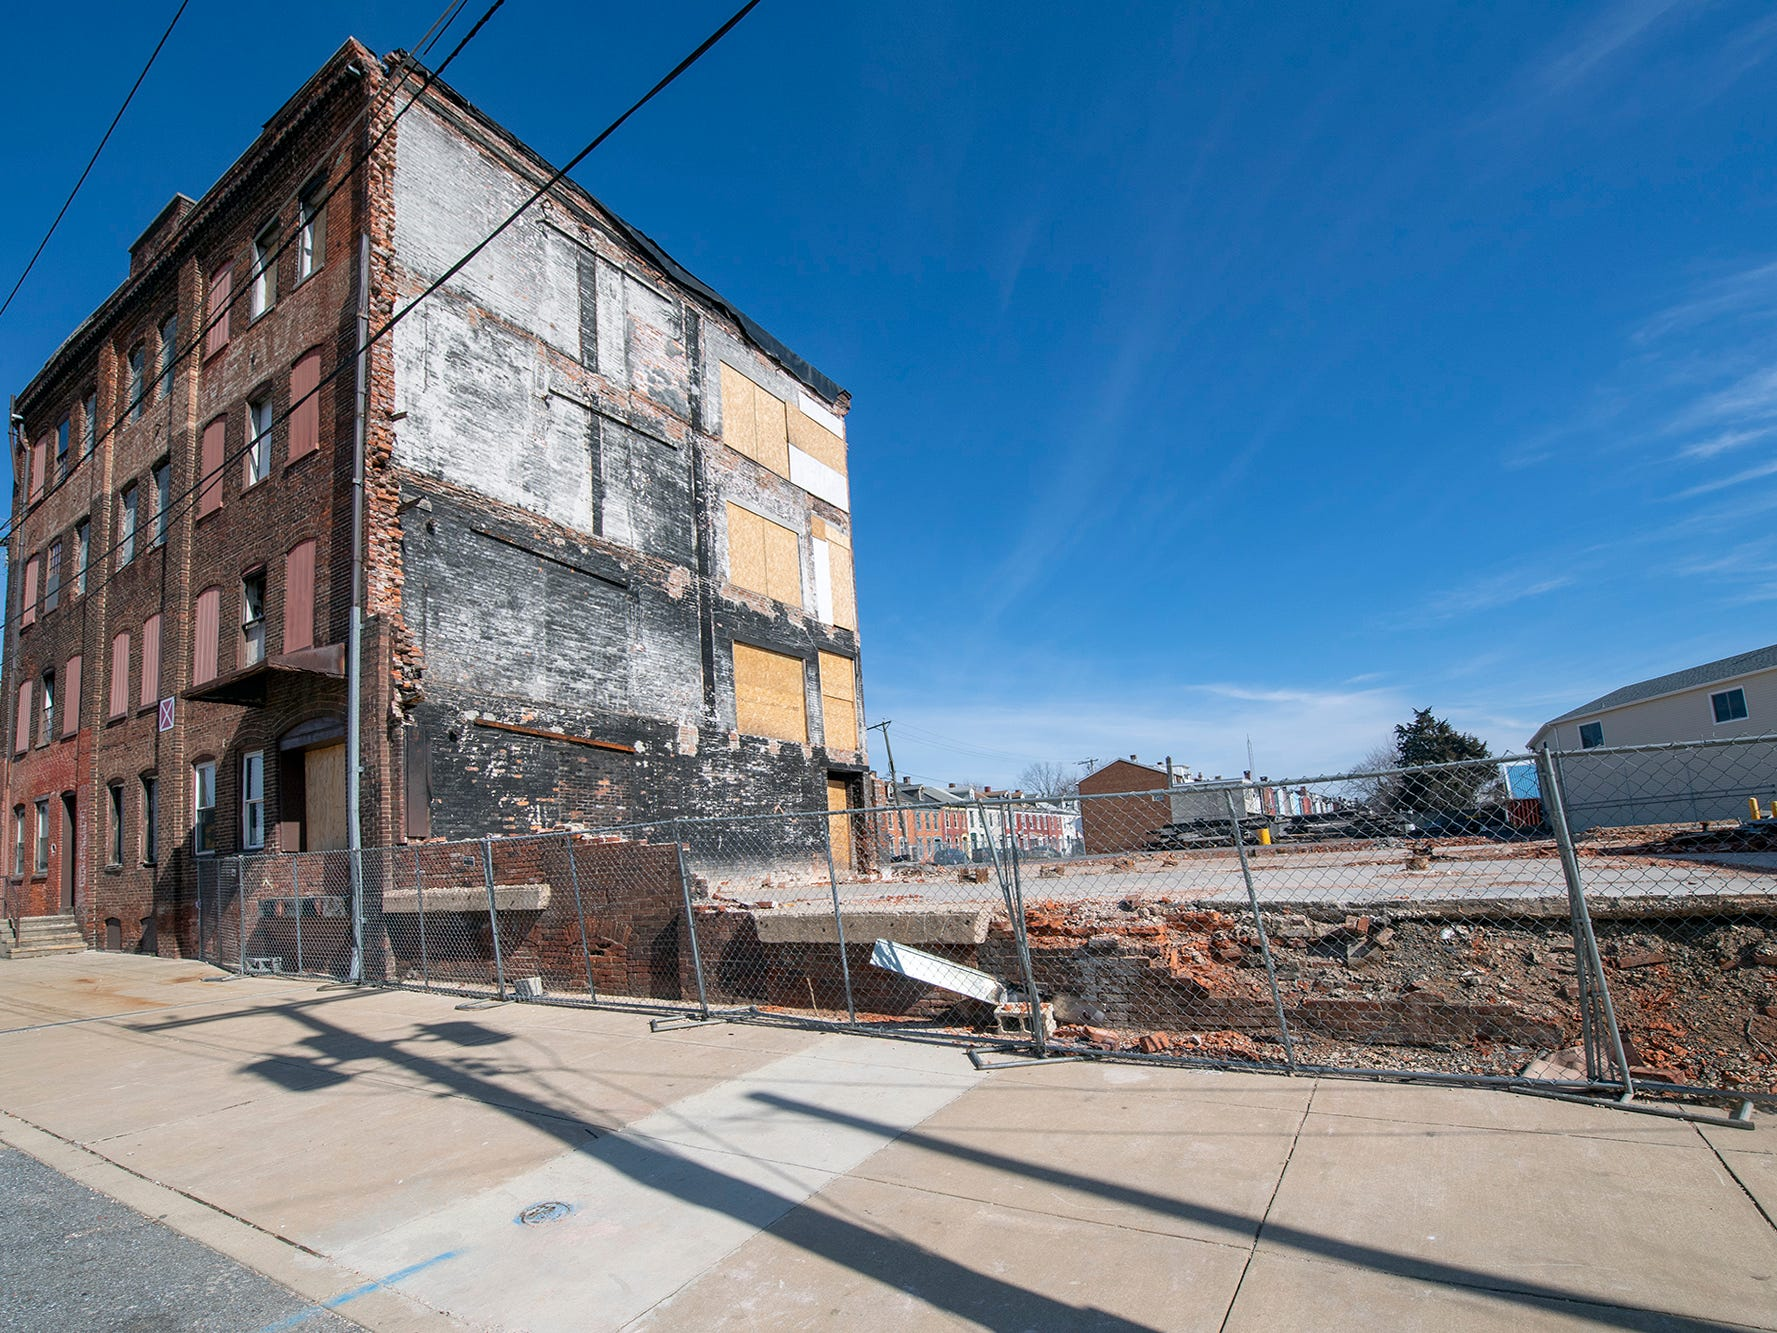 This is looking from Broad Street through a space that was once part the old Weaver Organ & Piano building in York. Fire ripped through the building March 21, 2018 during a snow storm. Firefighters Ivan Flanscha and Zachary Anthony died from injuries sustained in a structure collapse the day after.